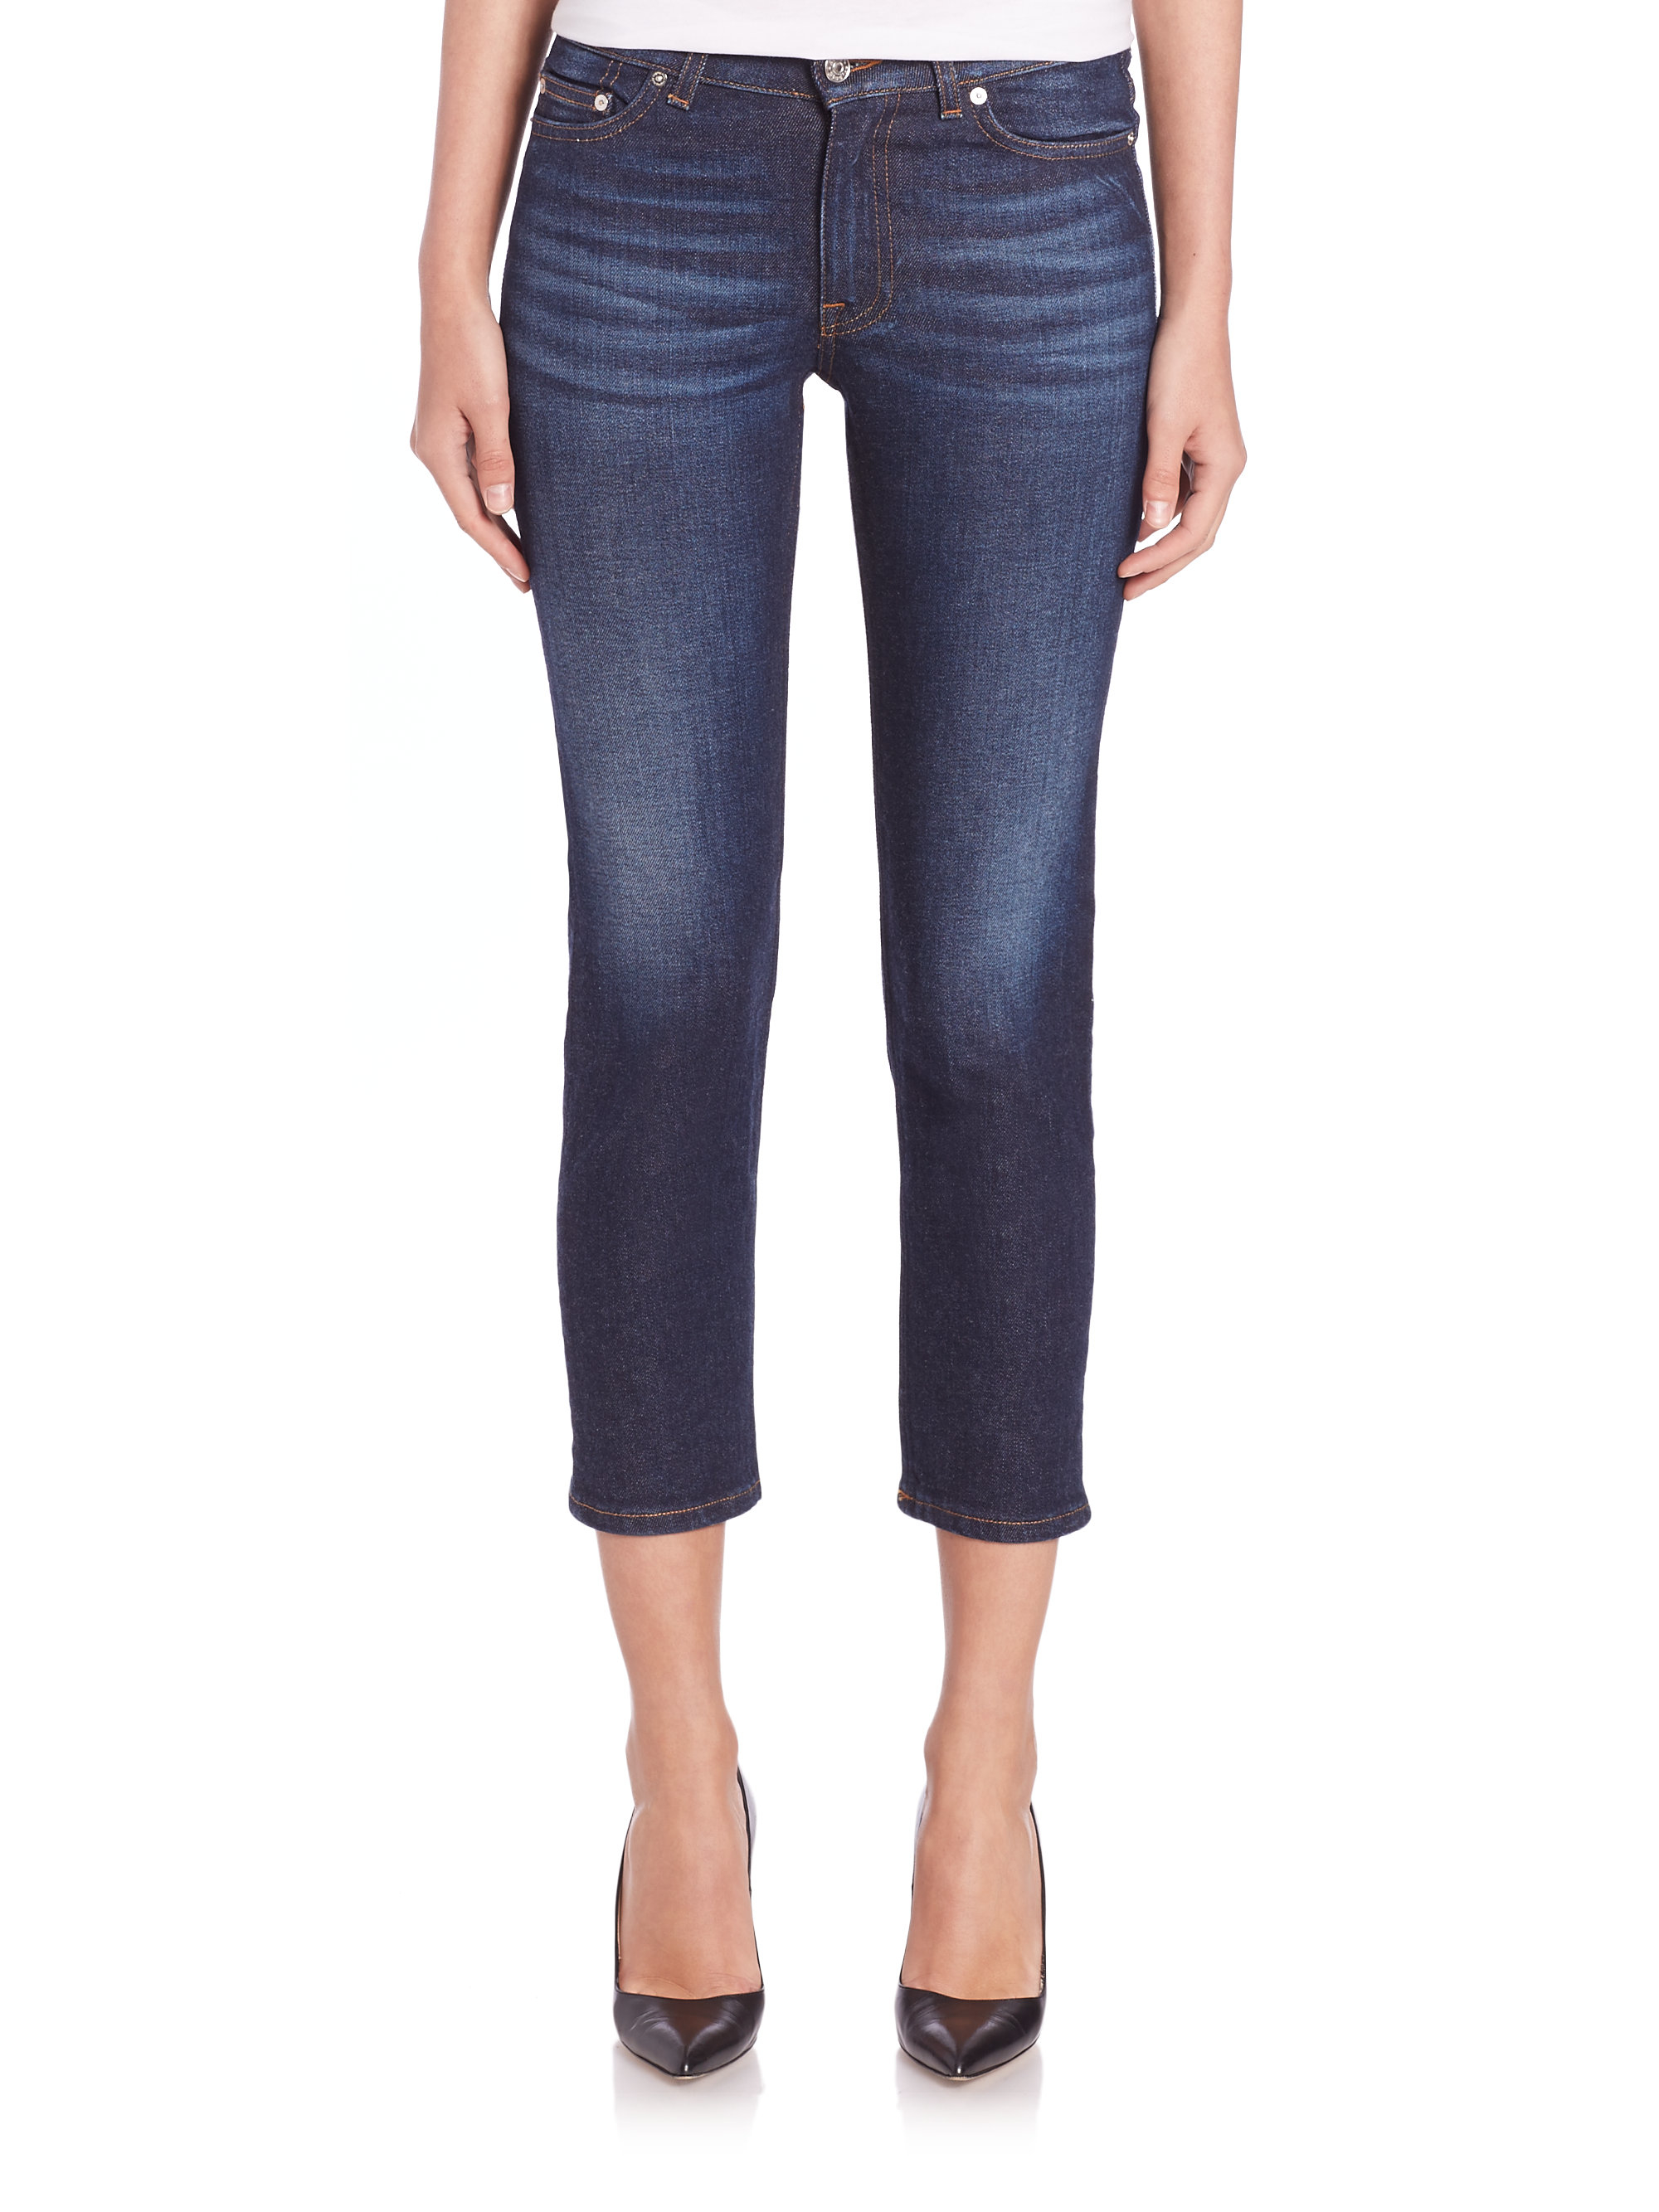 acne studios row cropped skinny jeans in blue lyst. Black Bedroom Furniture Sets. Home Design Ideas